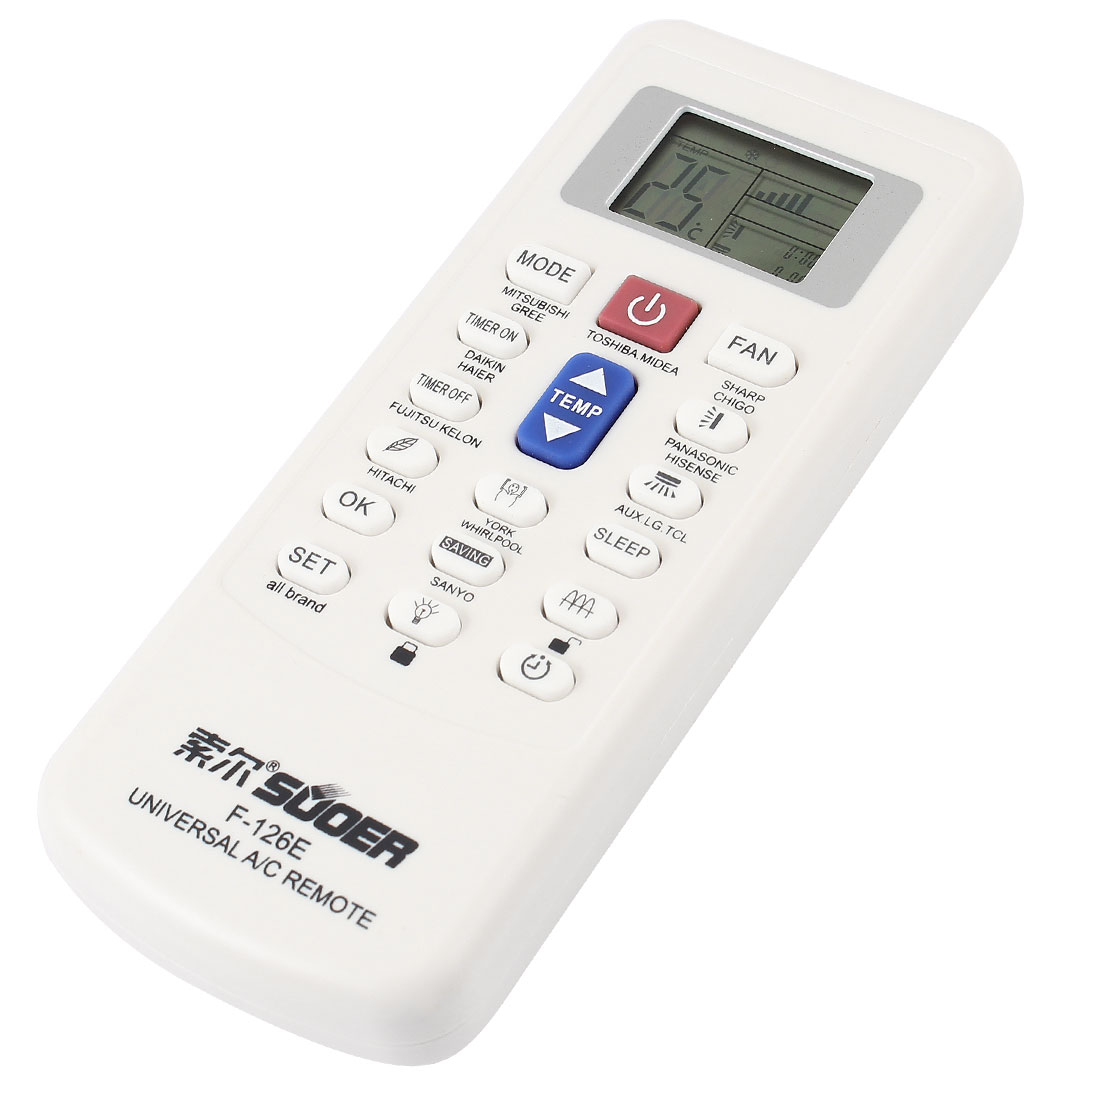 Universal LCD Display Plastic Shell Air Conditioner A/C Remote Control